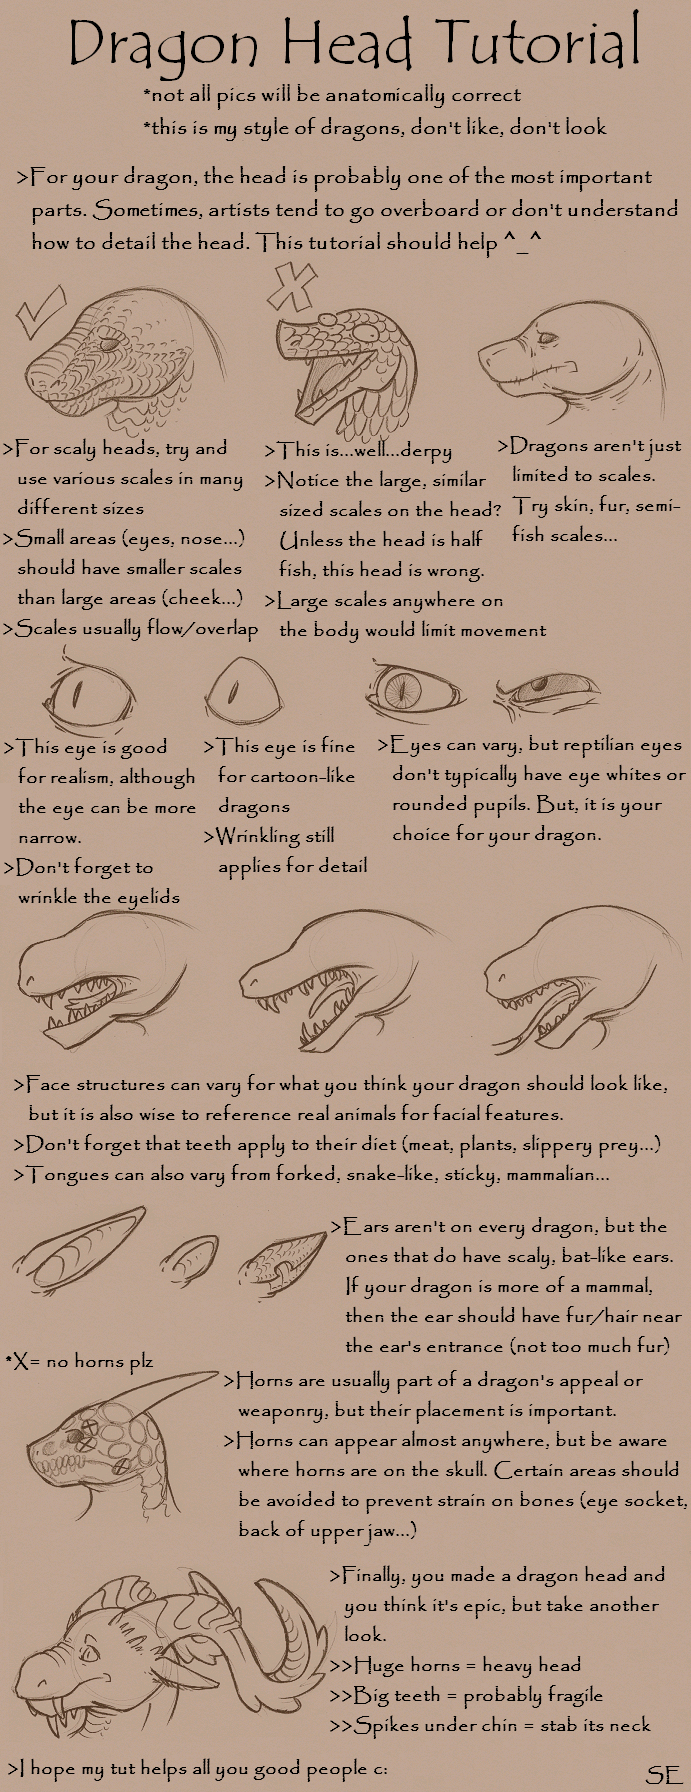 Dragon Head Tutorial by Scar-eye